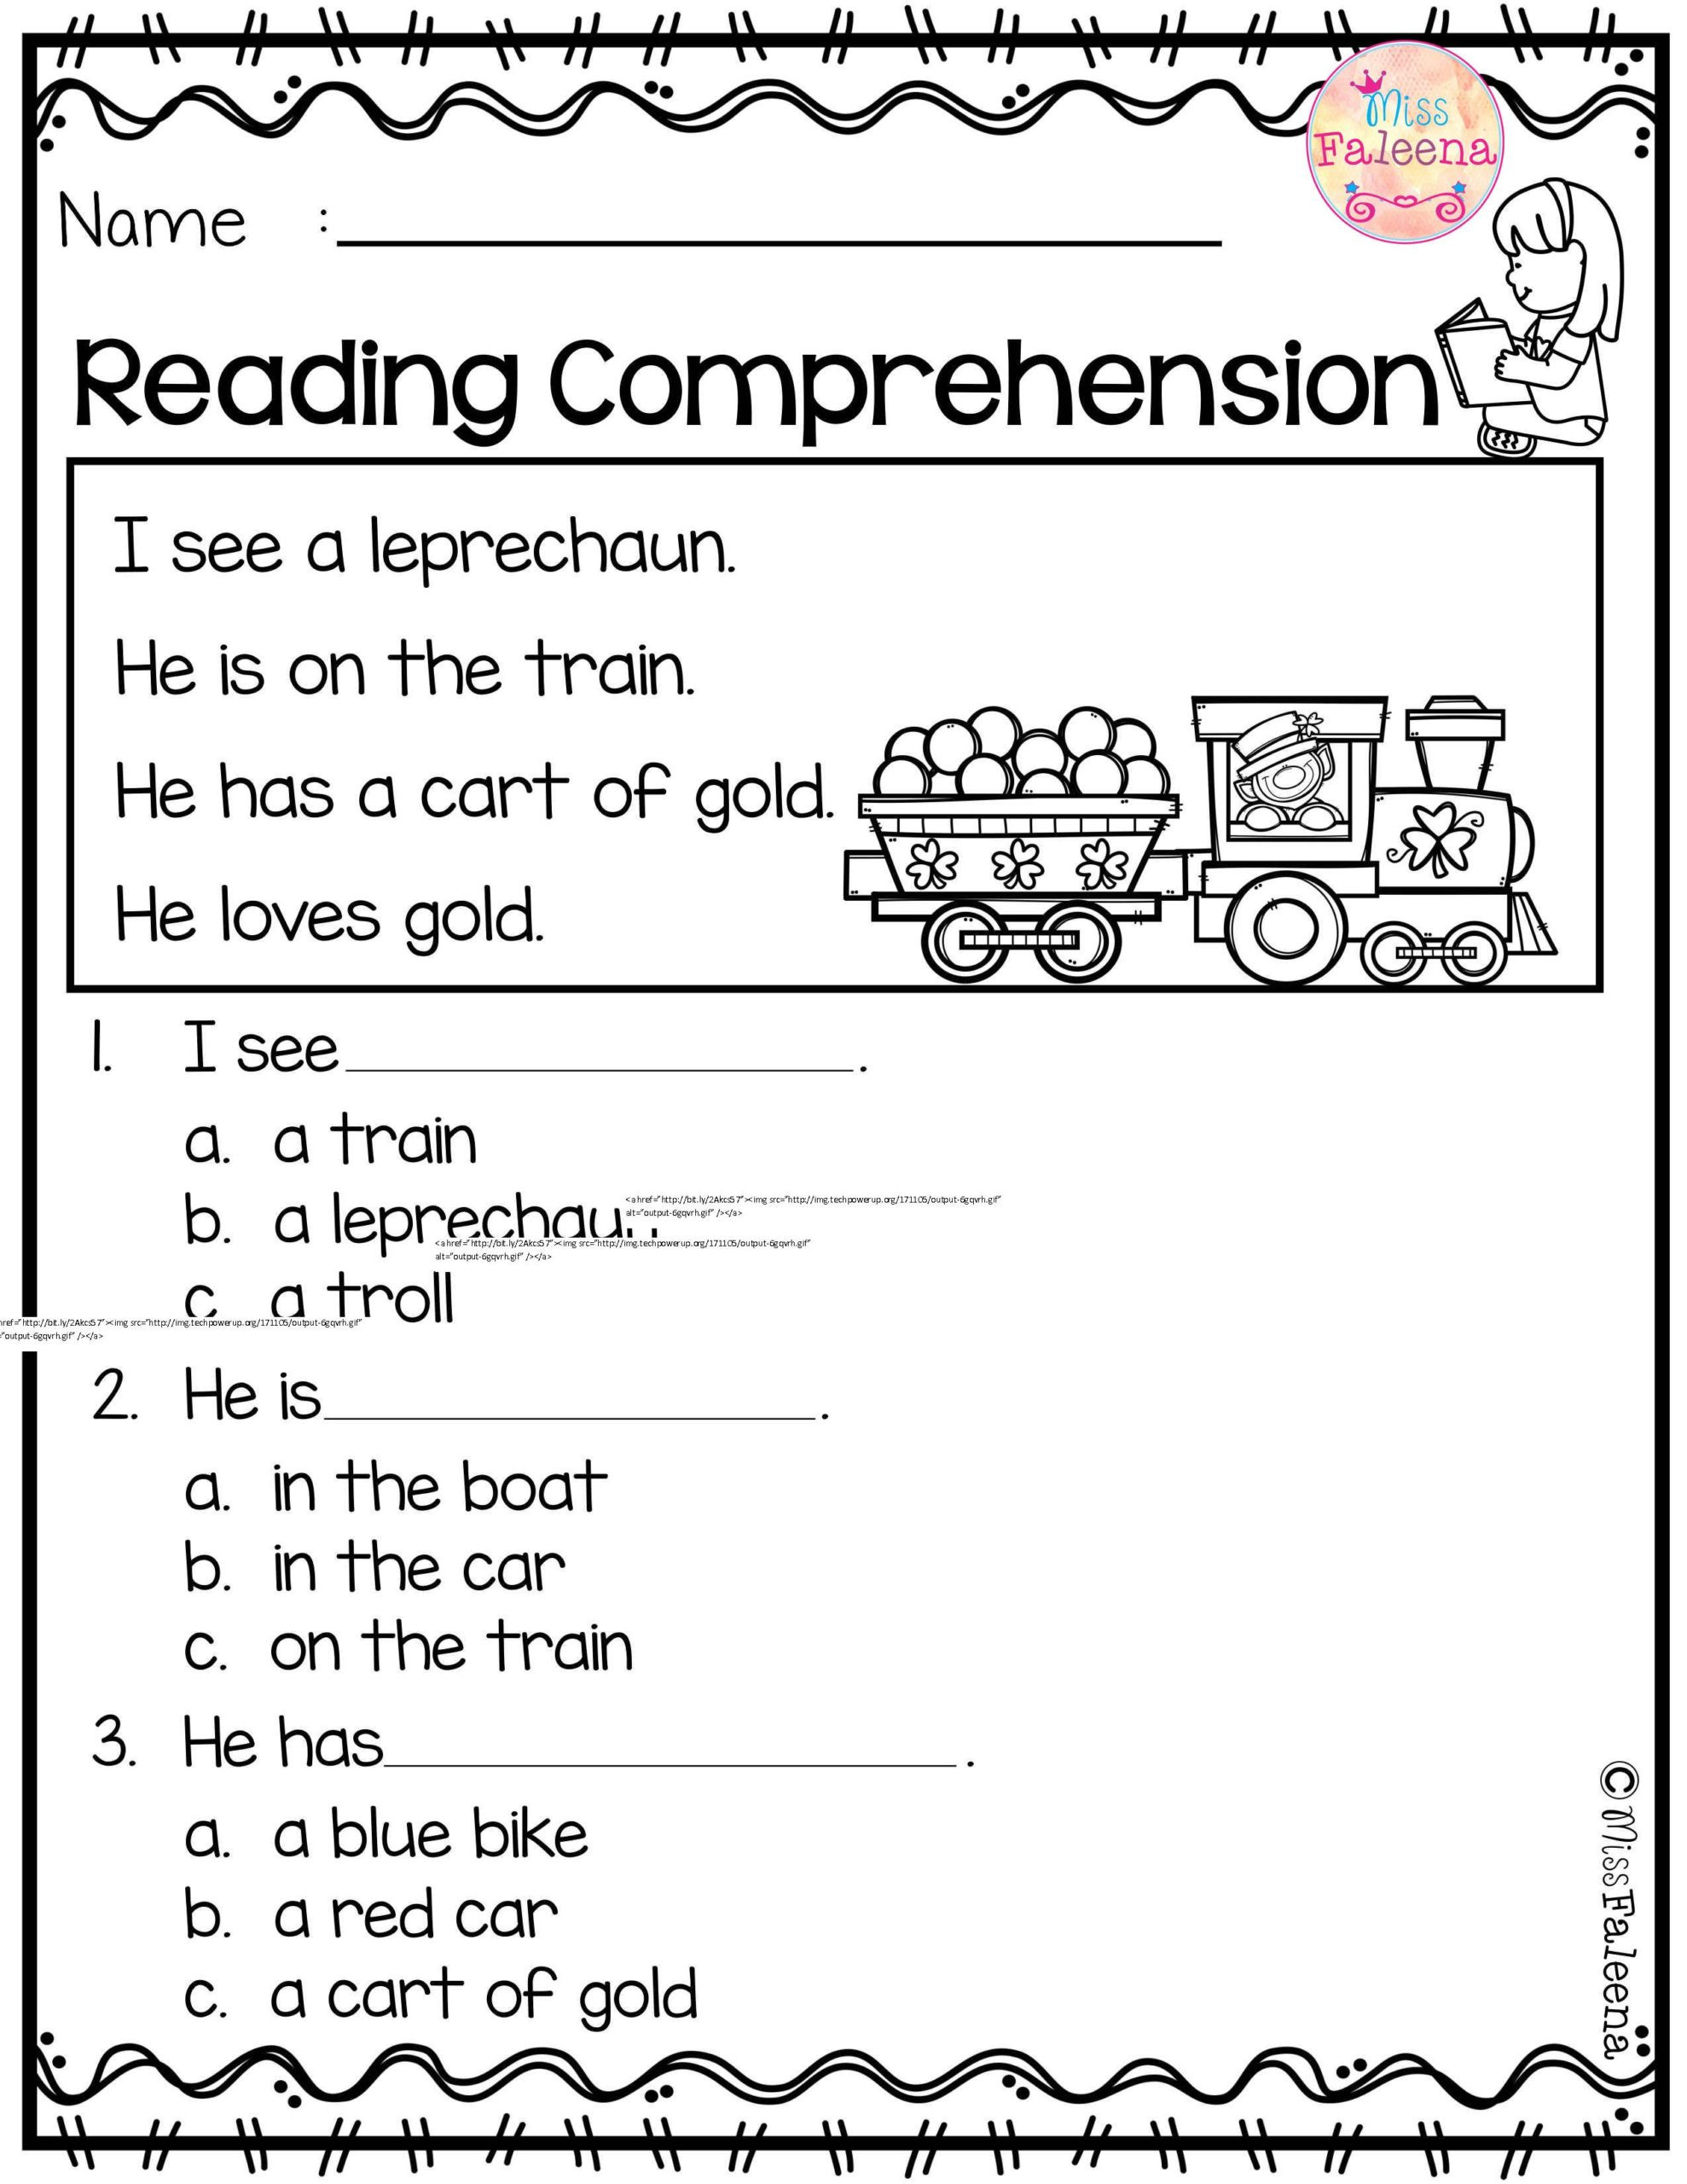 Shopping Math Worksheet Kindergarten 3rd Grade Math Patterns Printable Stories for